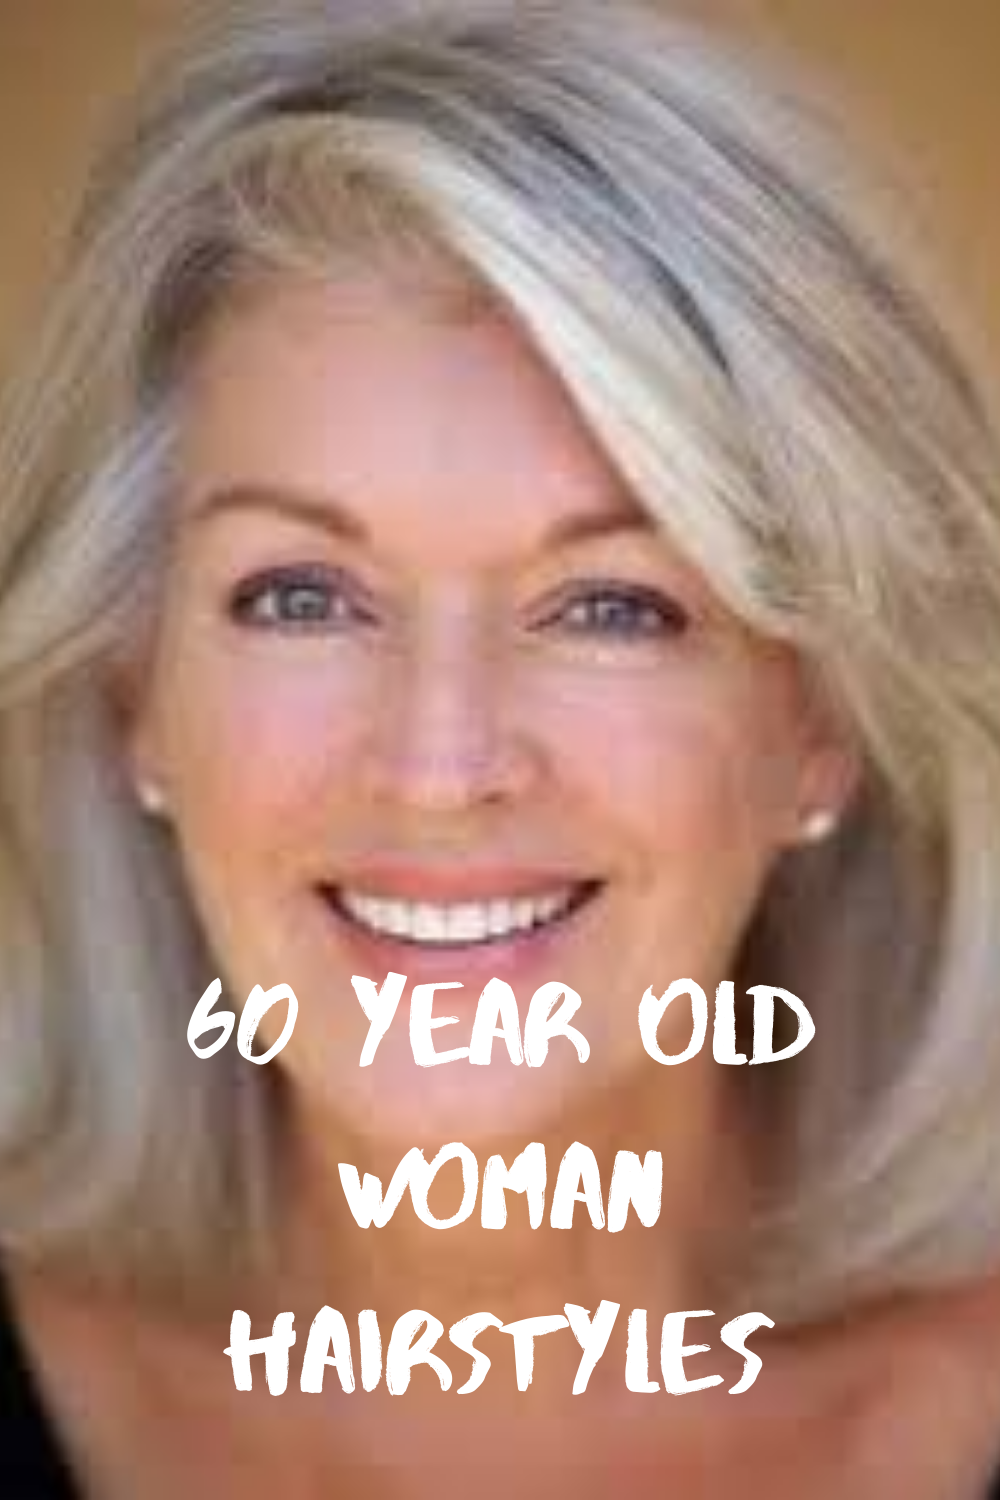 60 Year Old Woman Hairstyles In 2020 Old Hairstyles 60 Year Old Hairstyles Womens Hairstyles